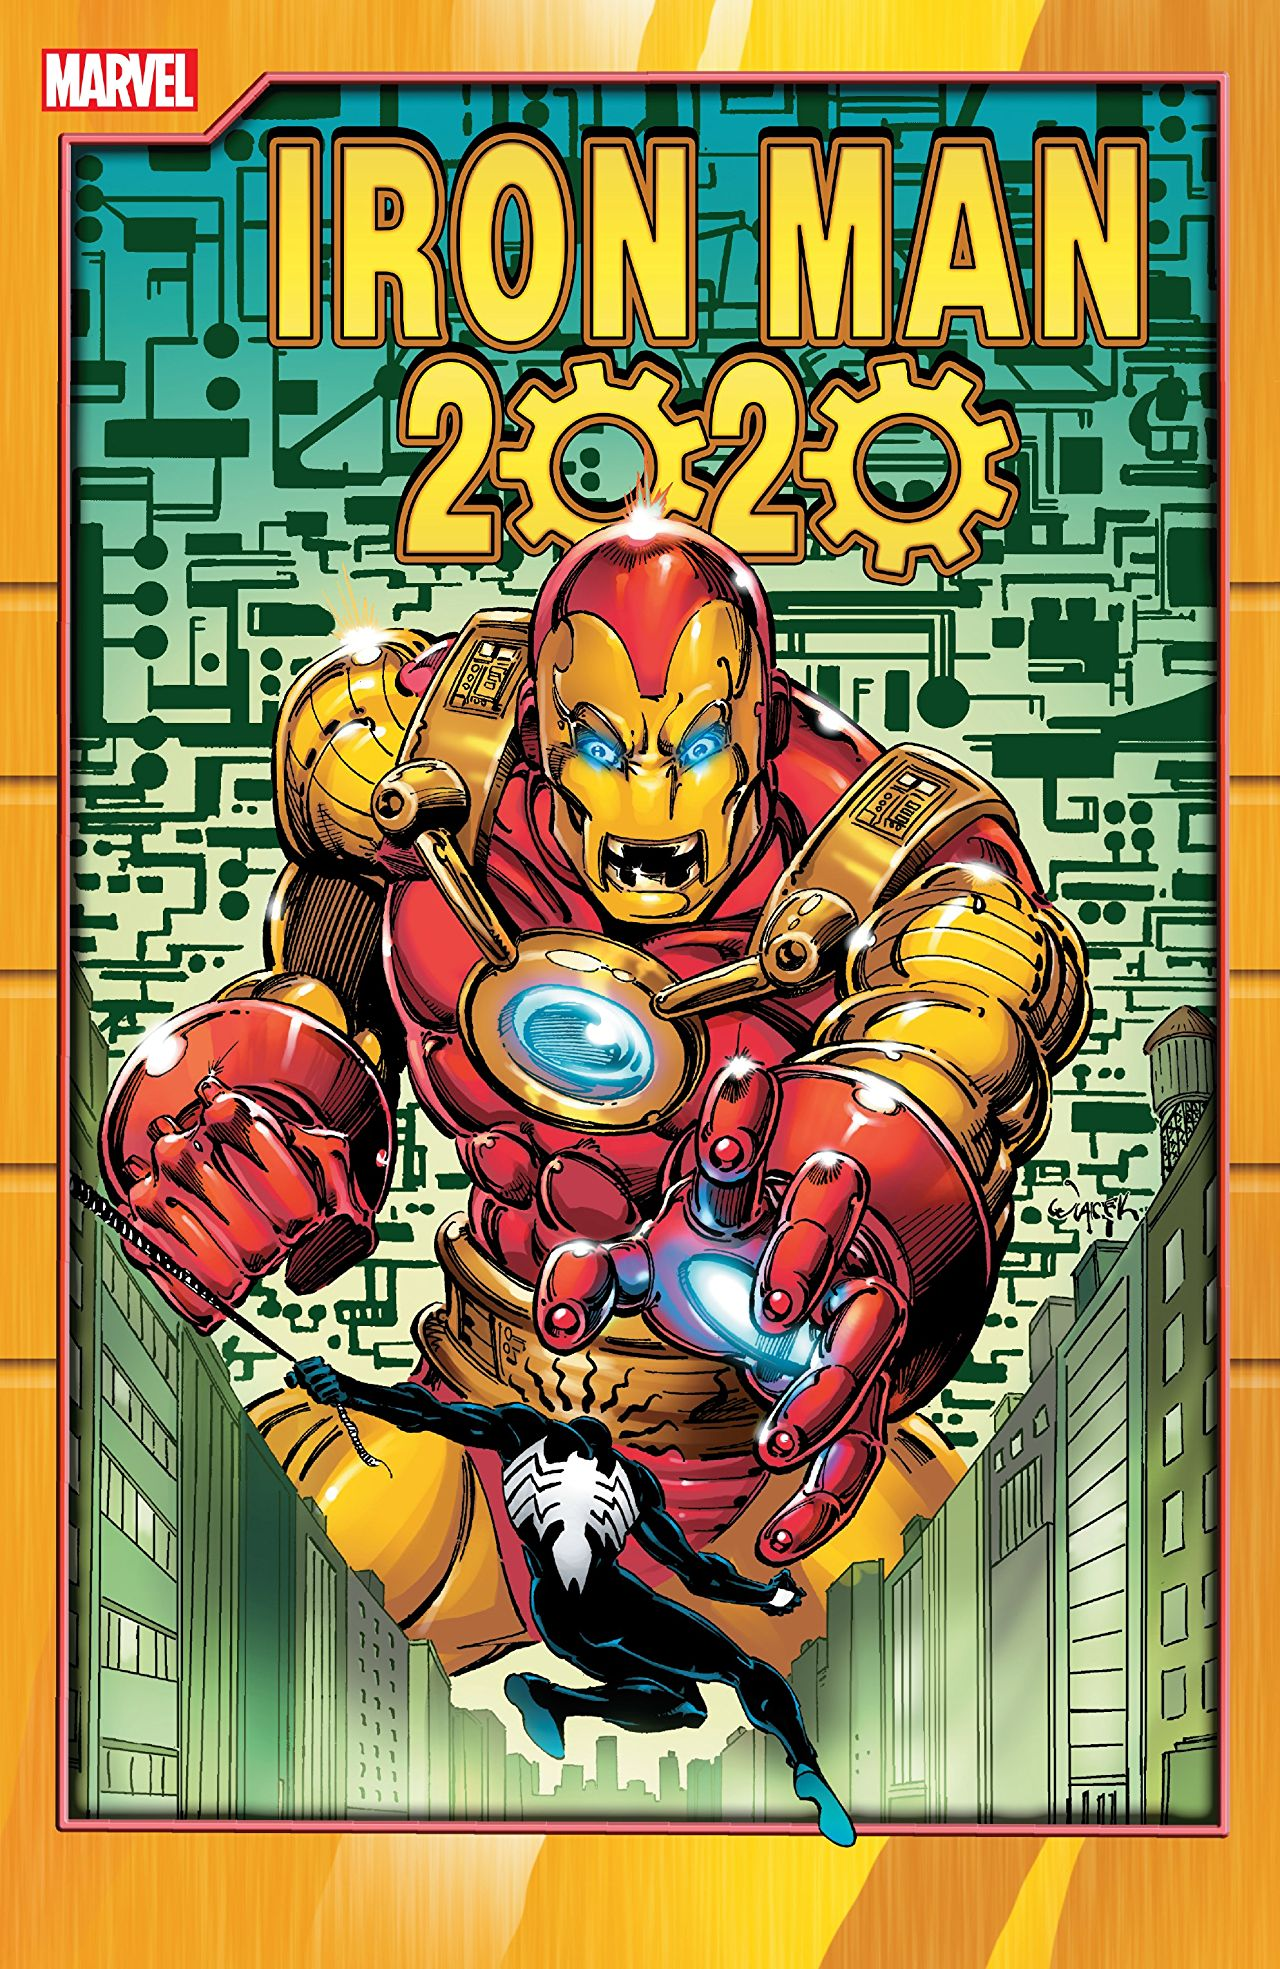 Iron Man 2020 review: The future is here... and it's pretty dull